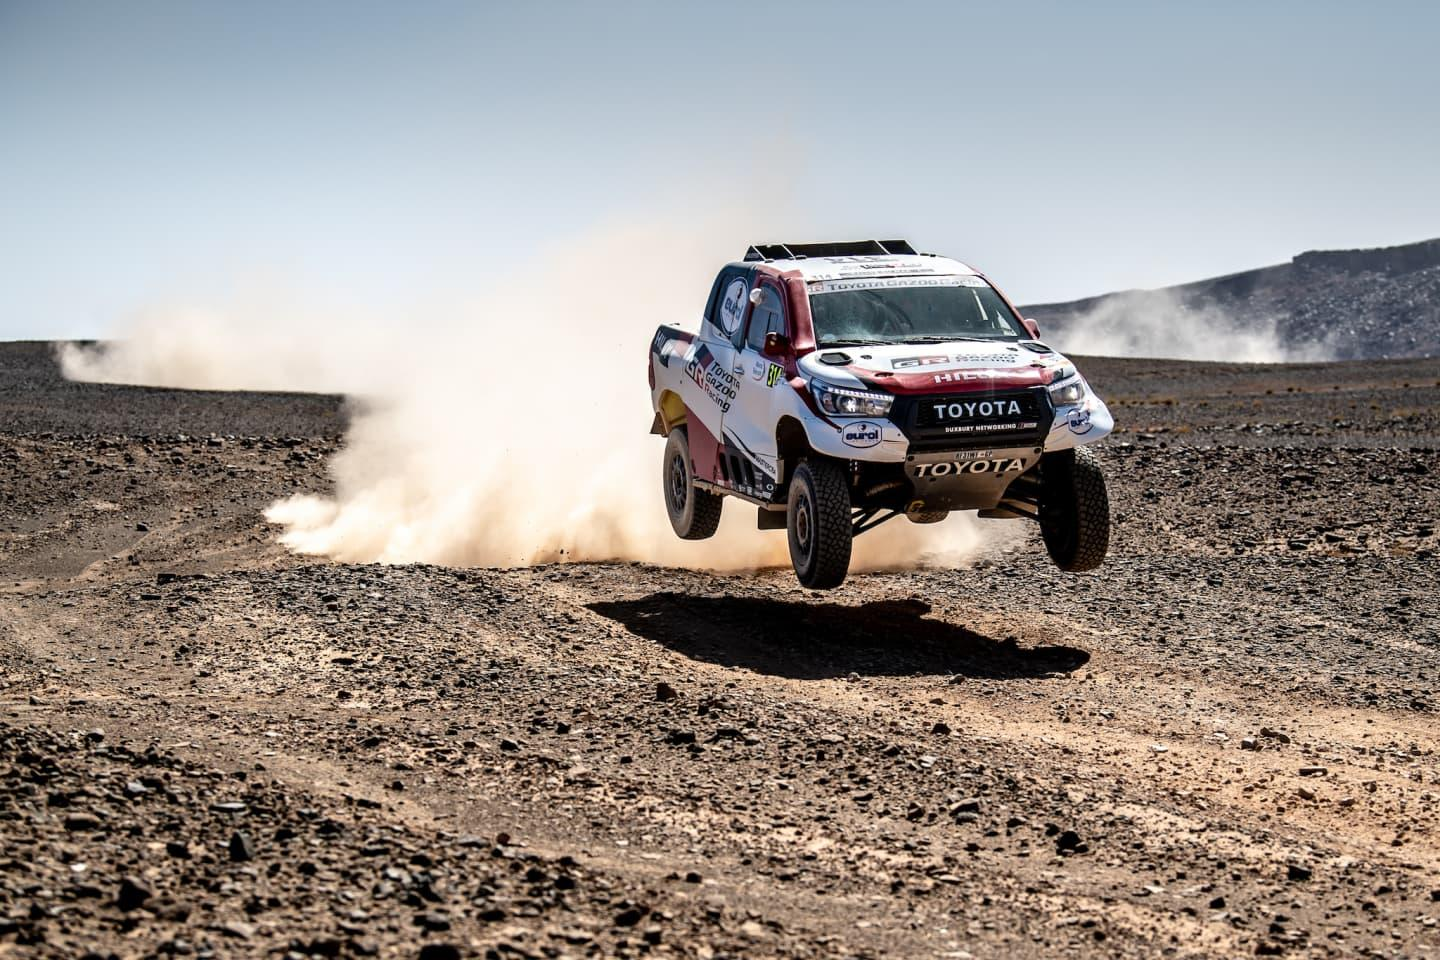 rally-marruecos-2019-world-cup-fia-fernando-alonso-31